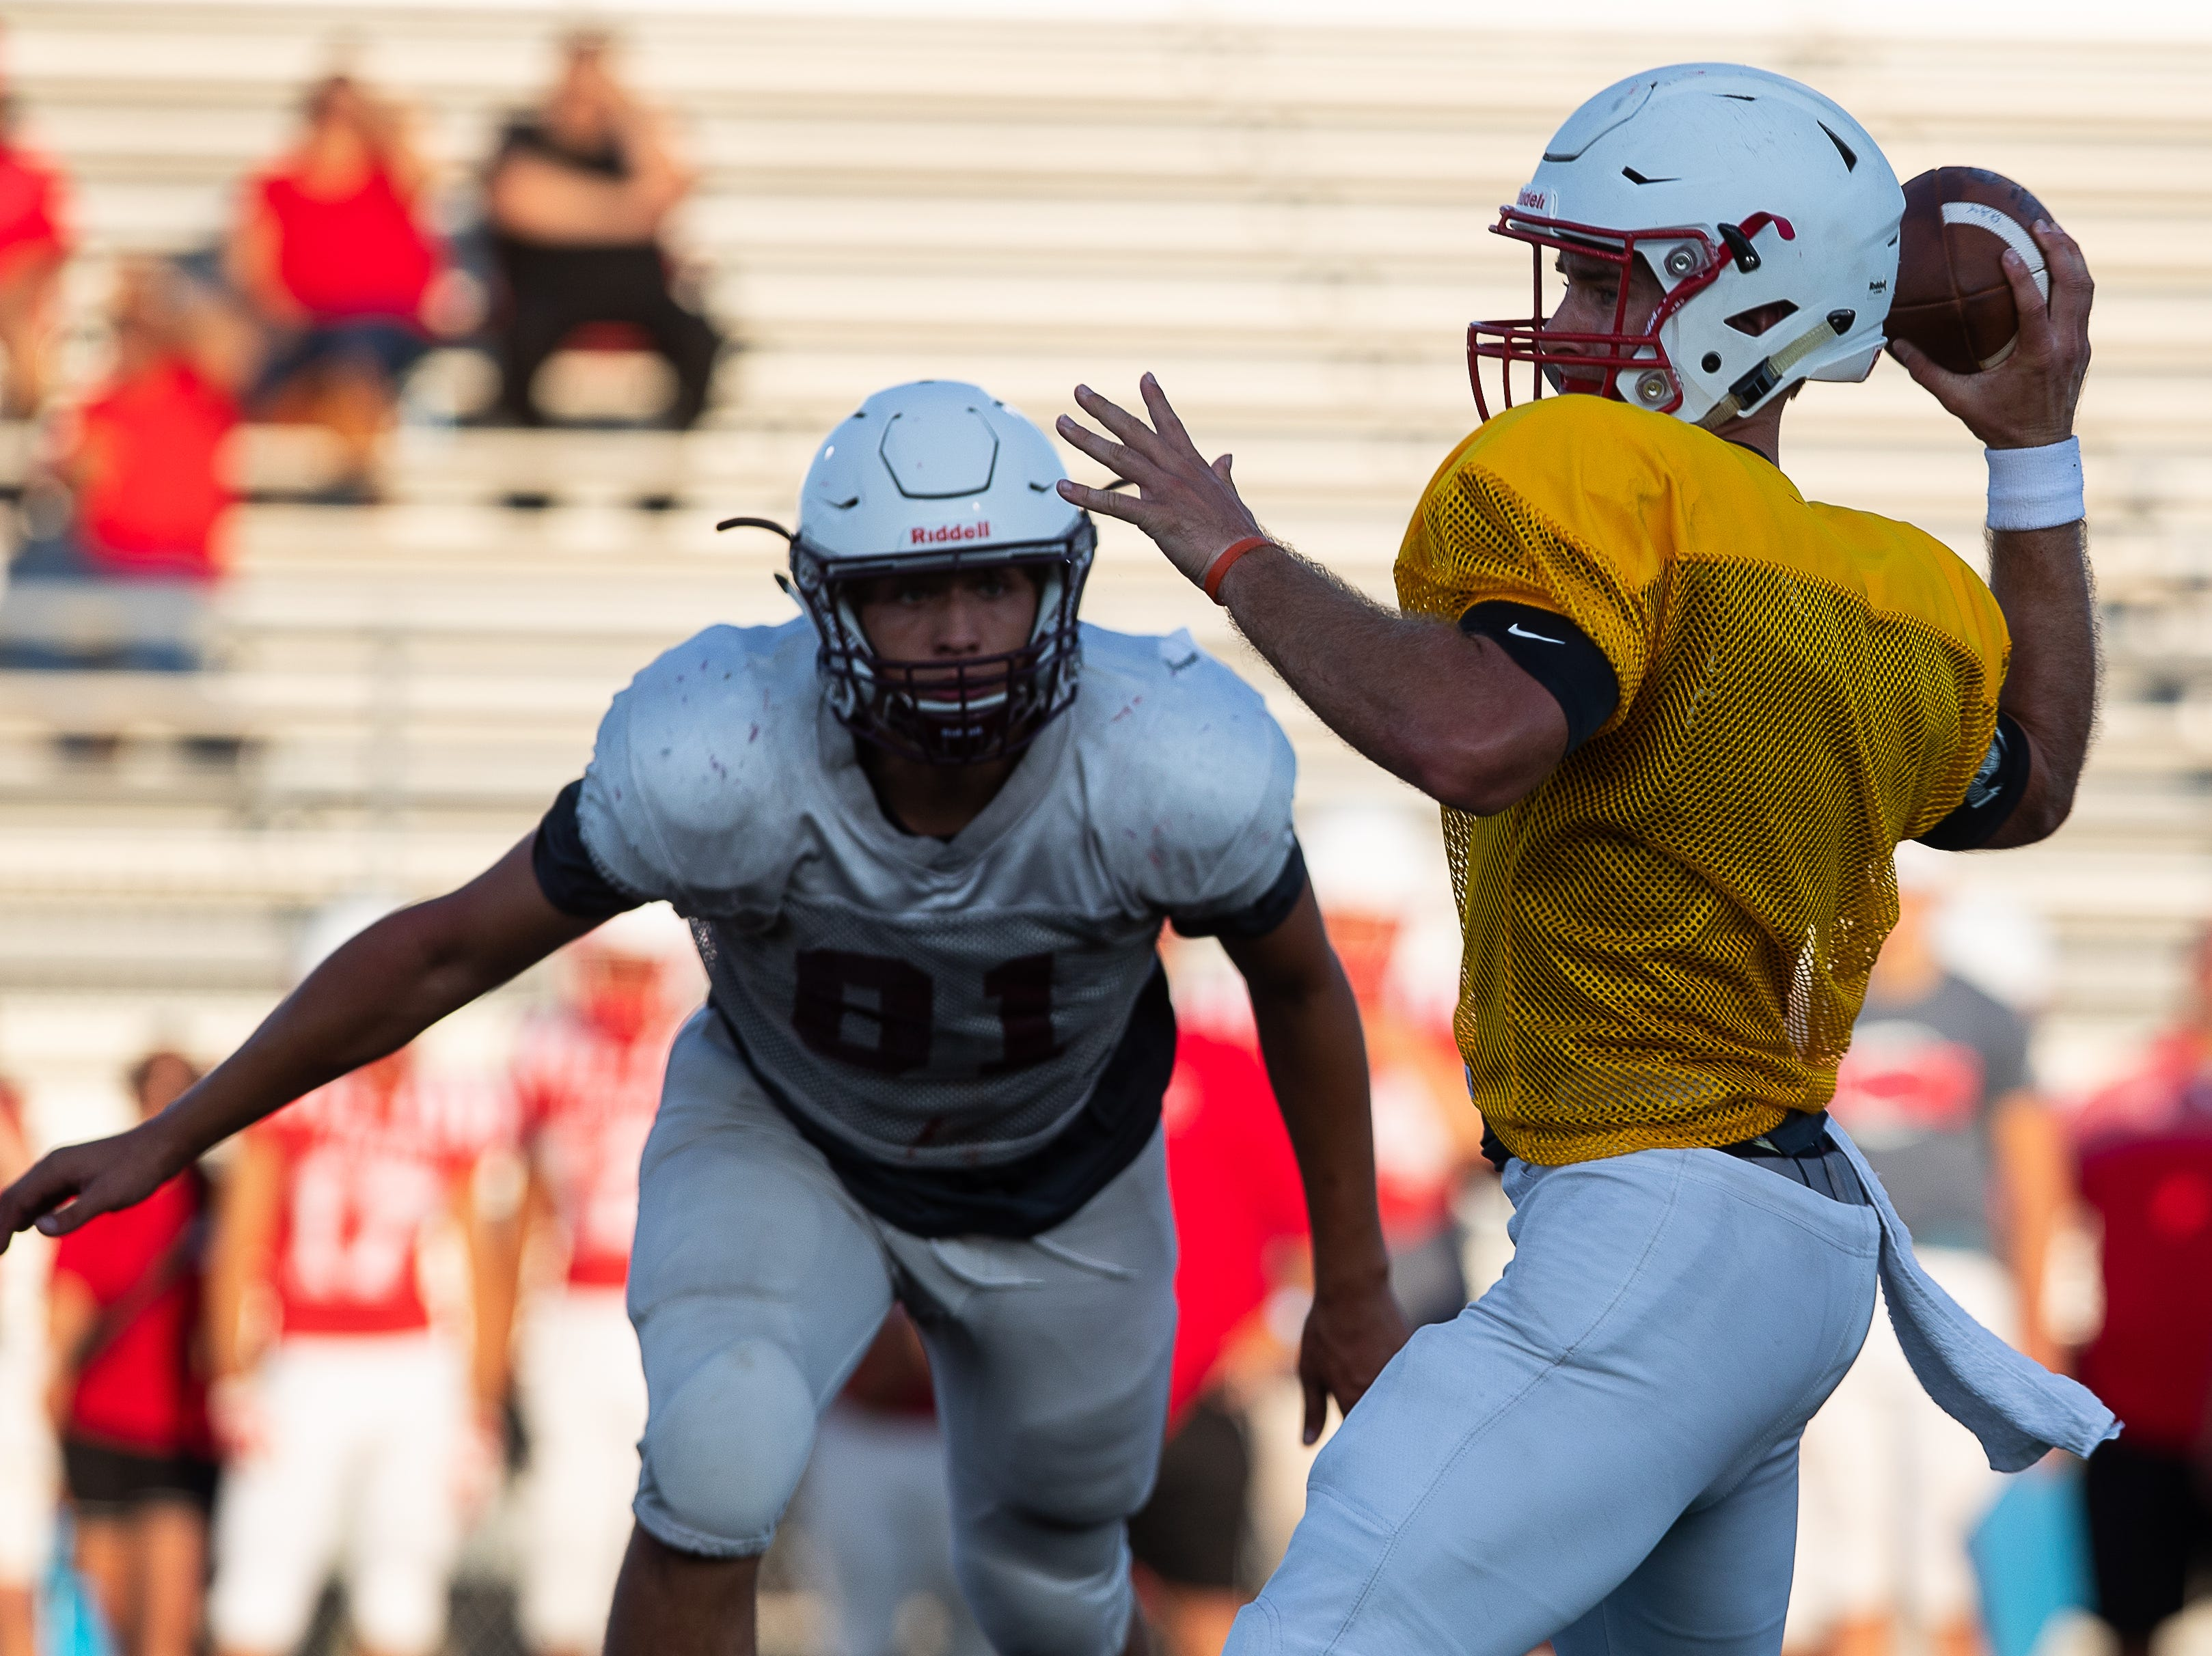 Ray scrimmage against Calallen at Wildcat Stadium on Friday, Aug, 24, 2018.